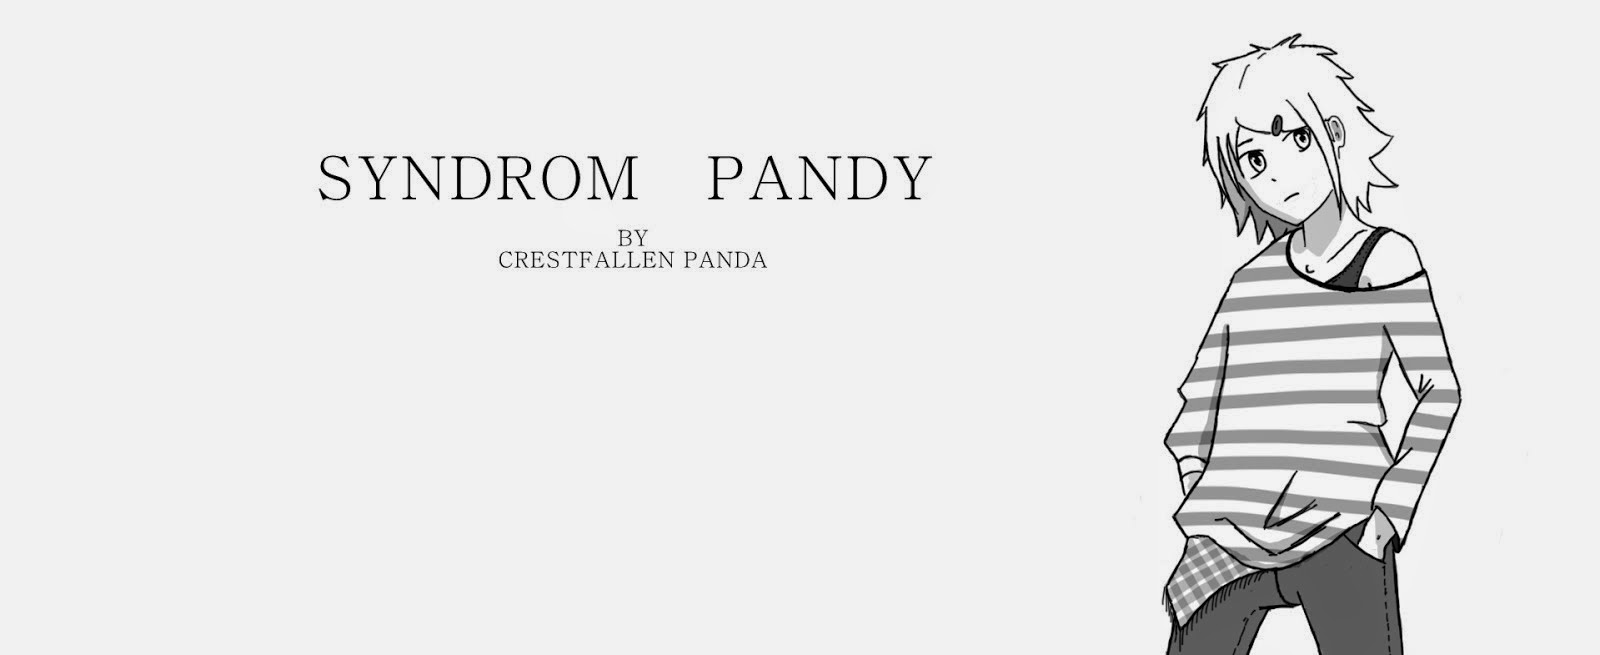 Syndrom Pandy